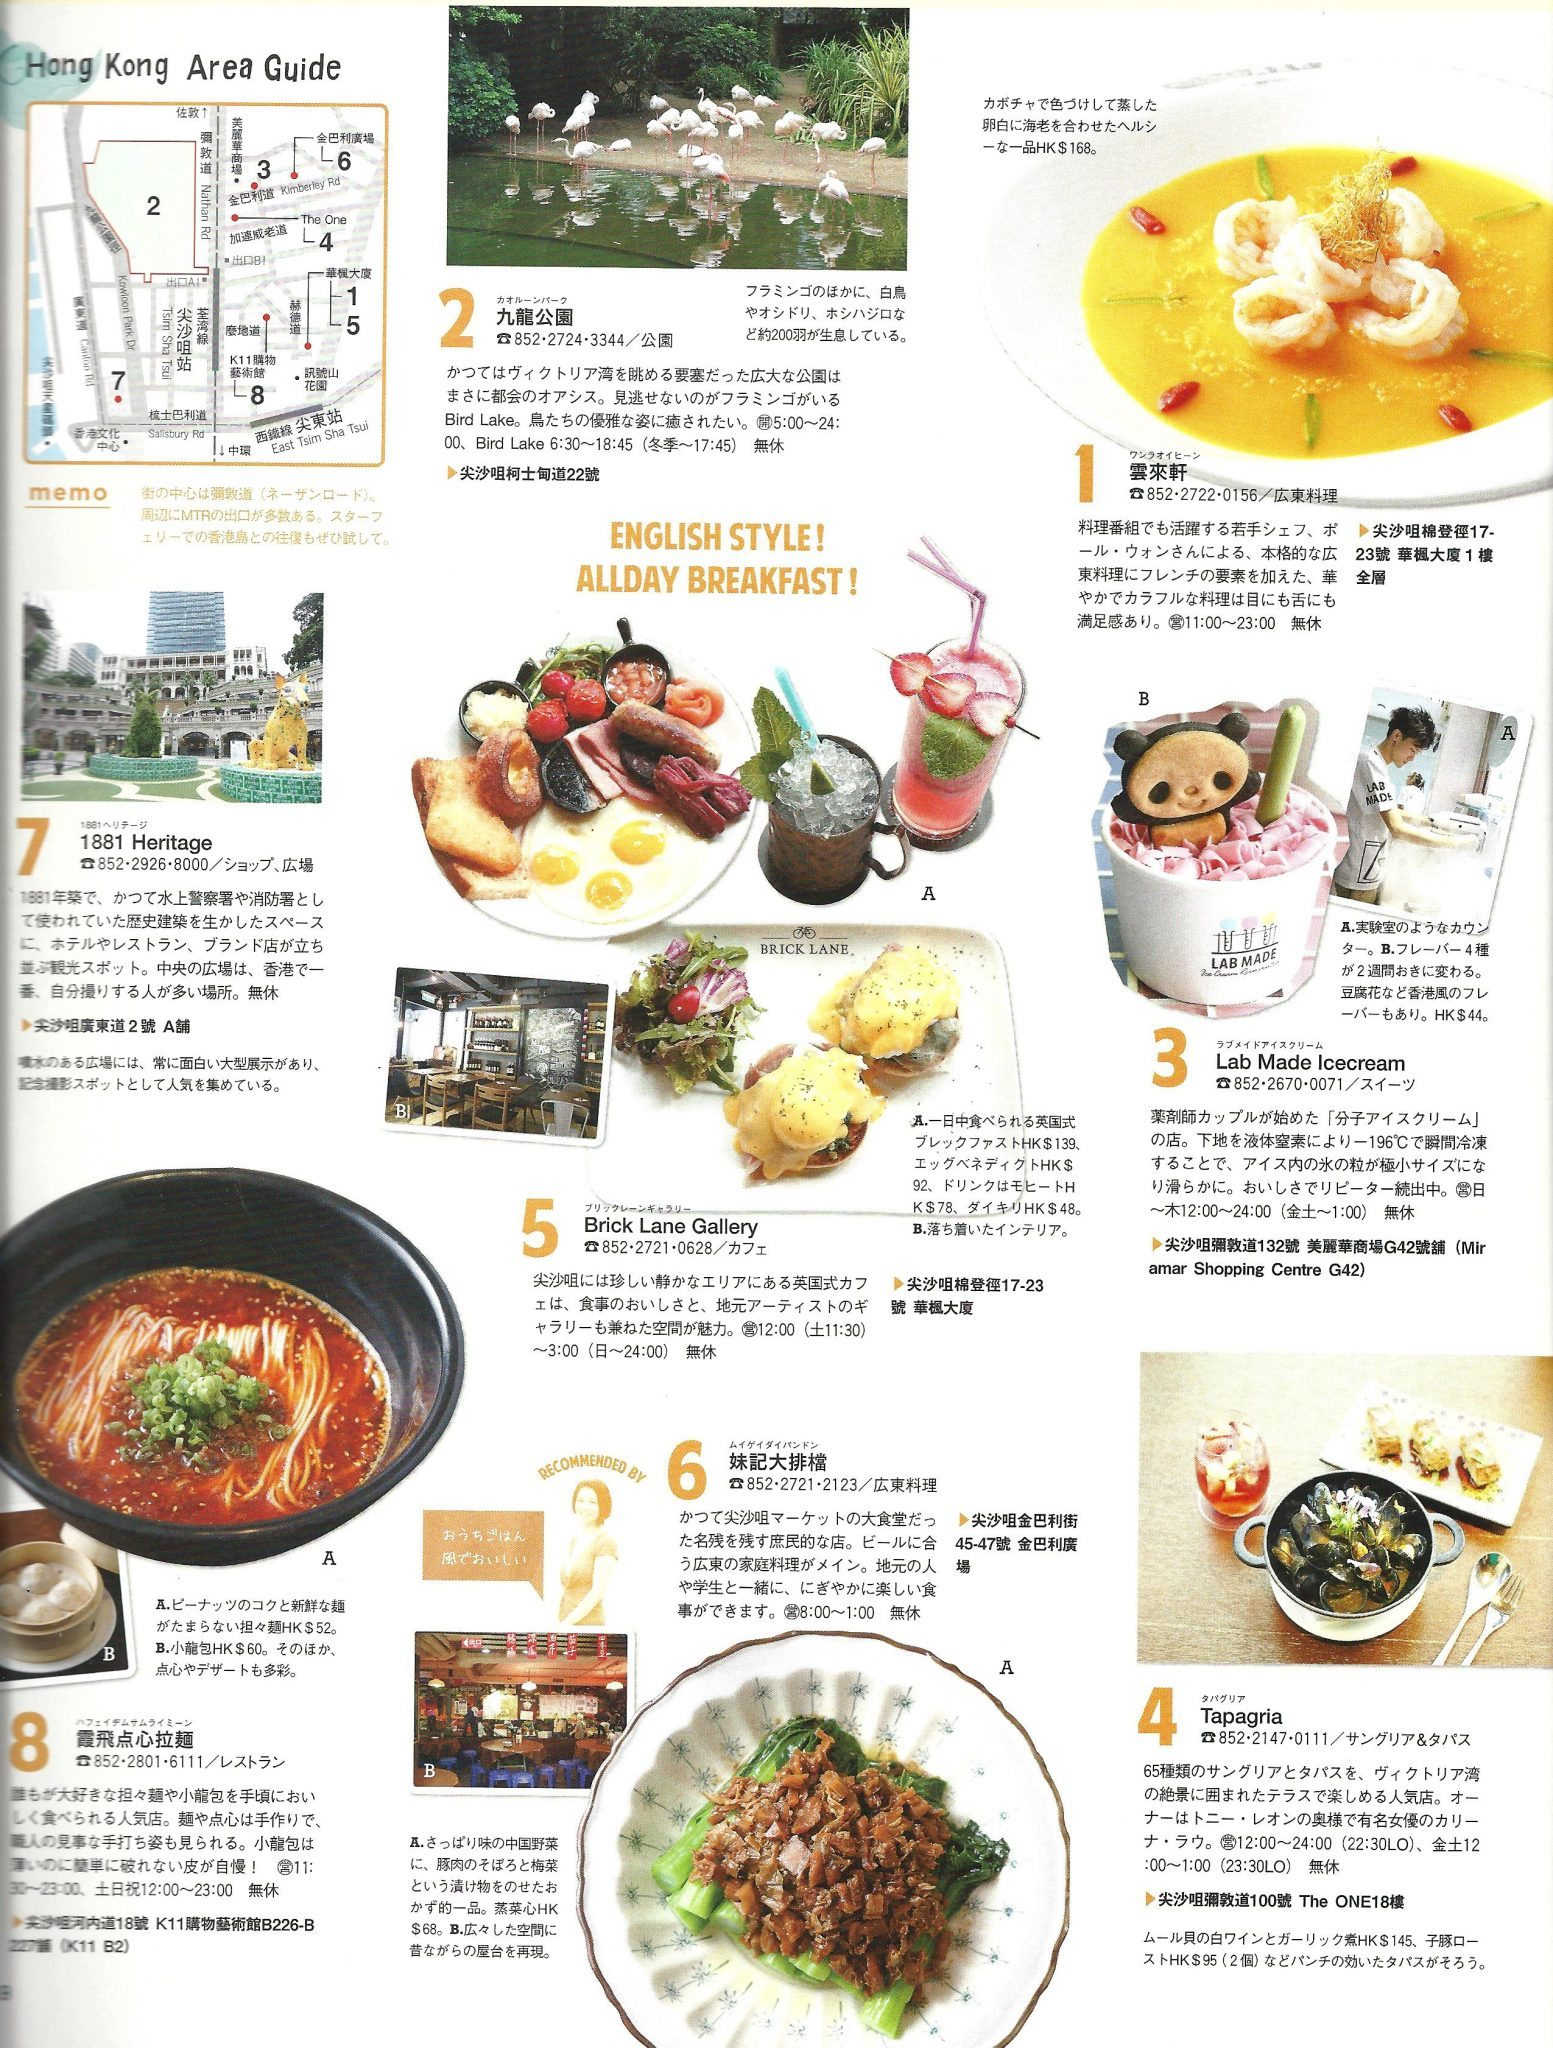 BRICK LANE Gallery featured in a Hong Kong travel guide session in Hanako - A Japanese magazine